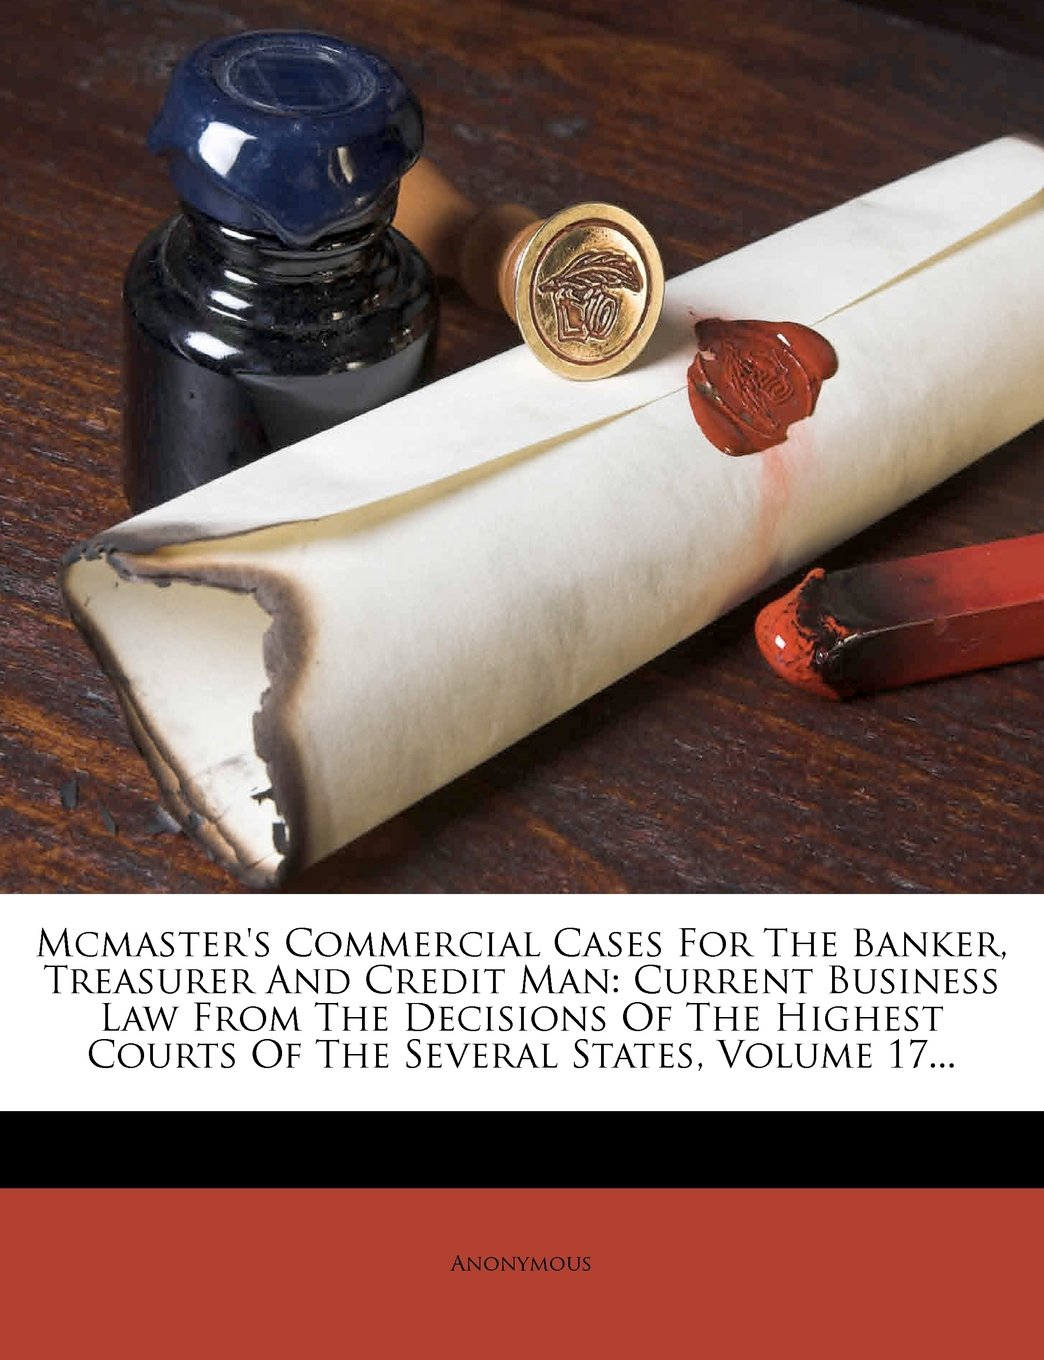 Read Online Mcmaster's Commercial Cases For The Banker, Treasurer And Credit Man: Current Business Law From The Decisions Of The Highest Courts Of The Several States, Volume 17... pdf epub